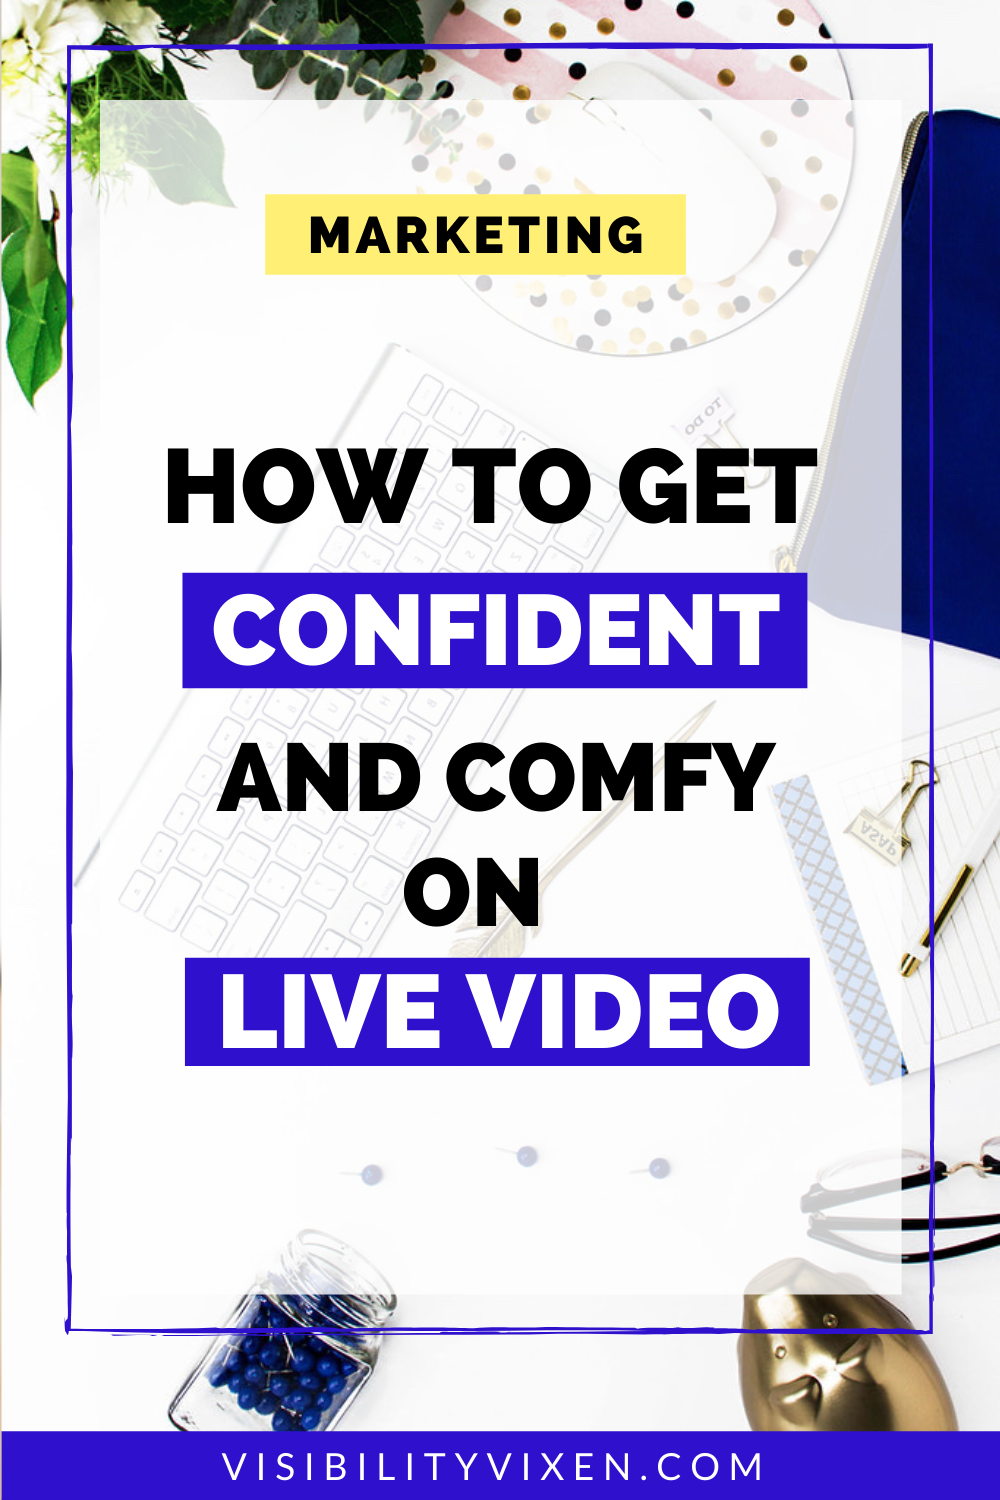 How To Get Confident Do Video For Your Online Business Video Marketing Business Video Marketing Strategies Learn Marketing